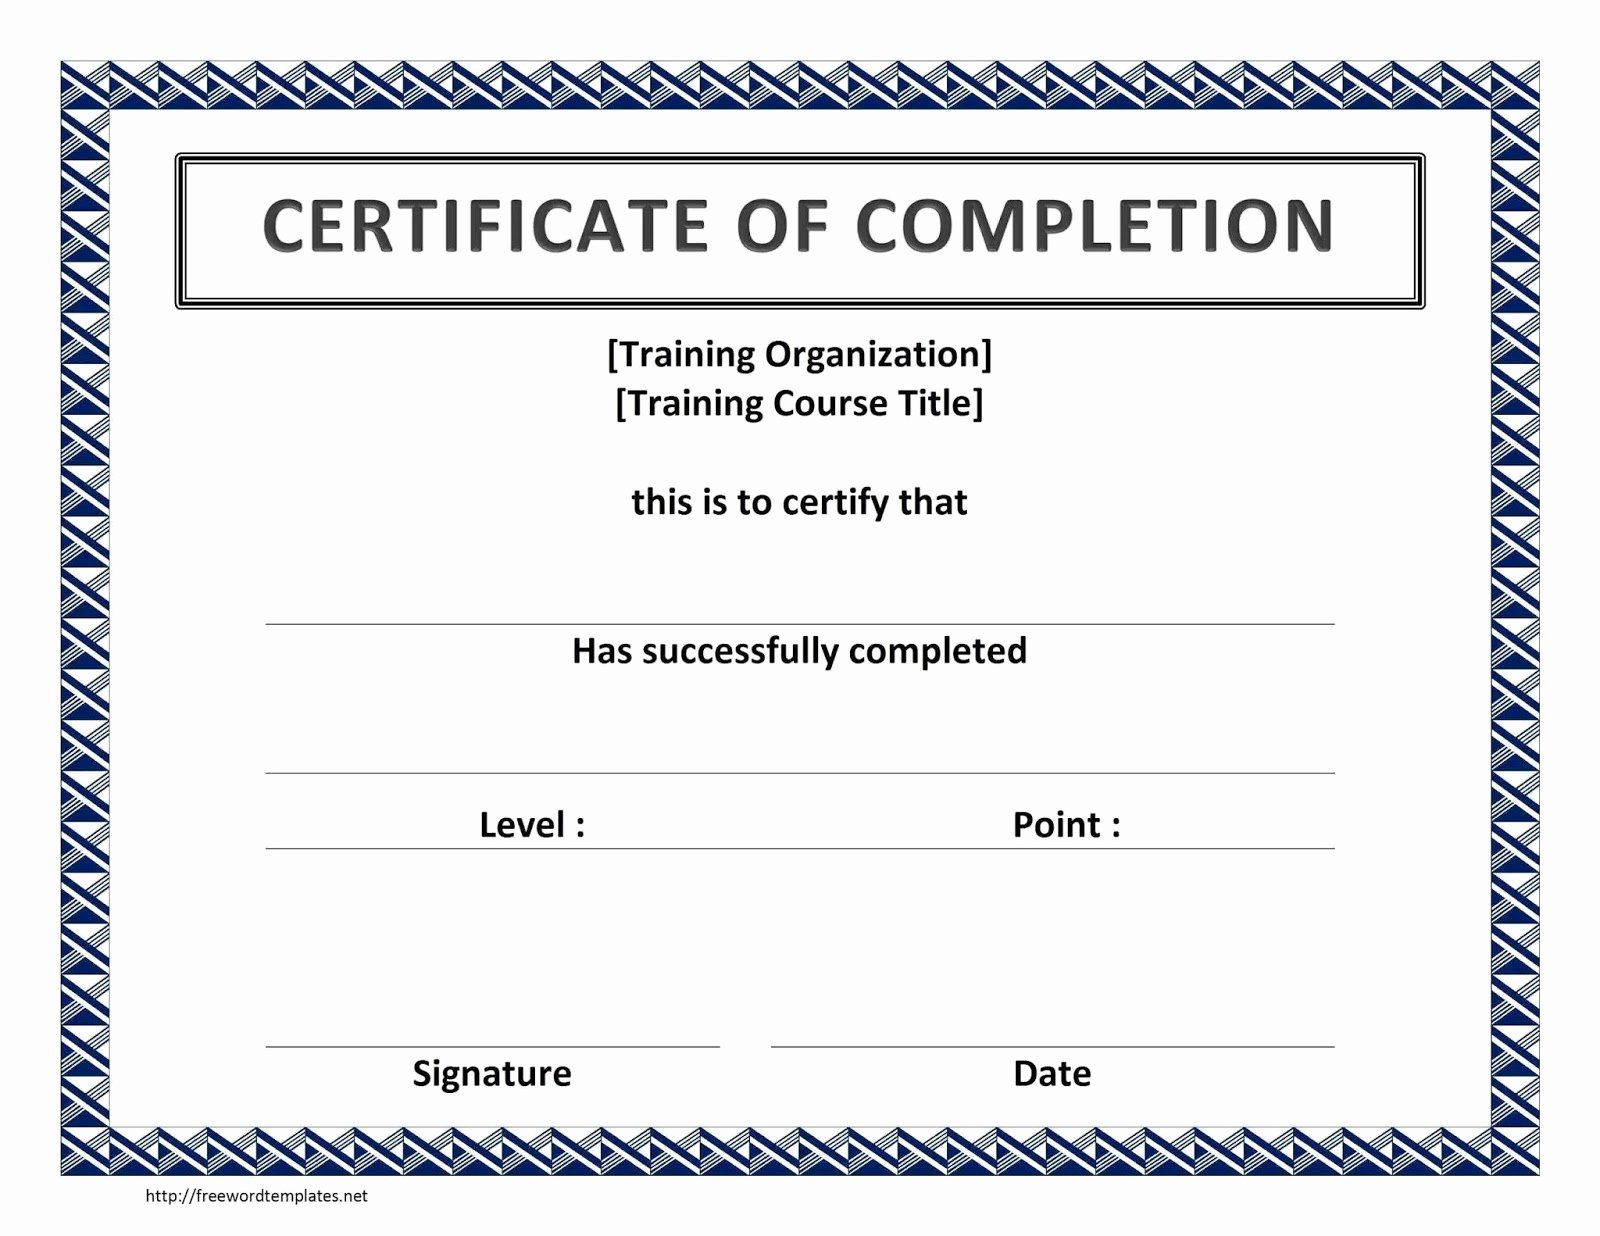 Award Certificate Template Free Lovely Certificate Templates Sample Blank Certificates